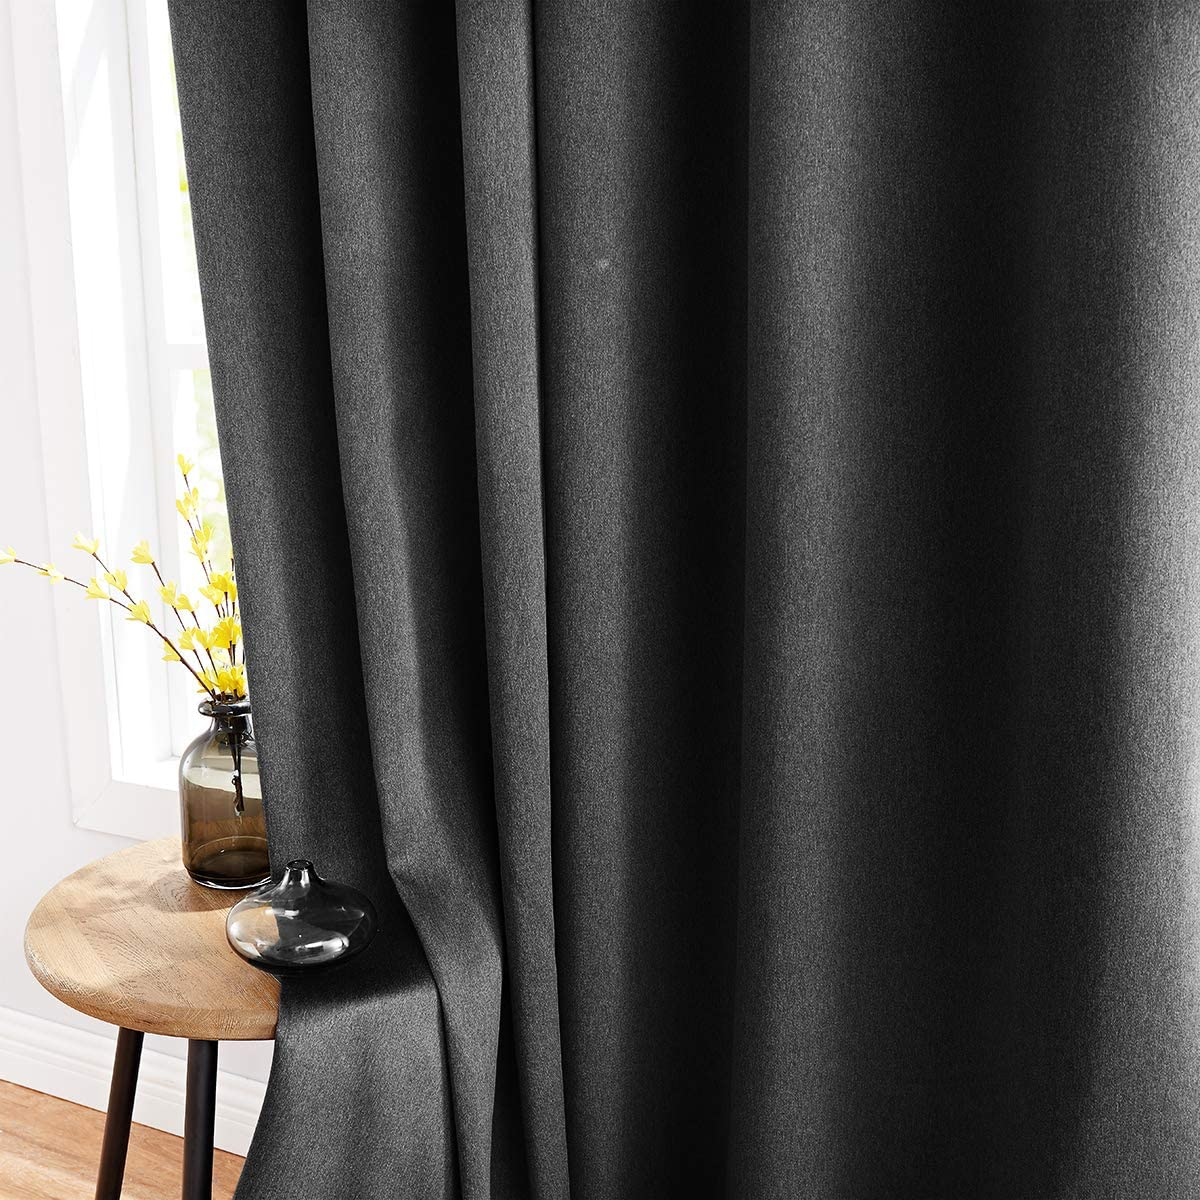 Fmfunctex Gray Full Blackout Curtain Panels for Bedroom 96-inch Long Soft Energy Efficient Modern Window Curtain Drapes Charcoal Grey, 40 Width Panel 1 Pair Grommet Top